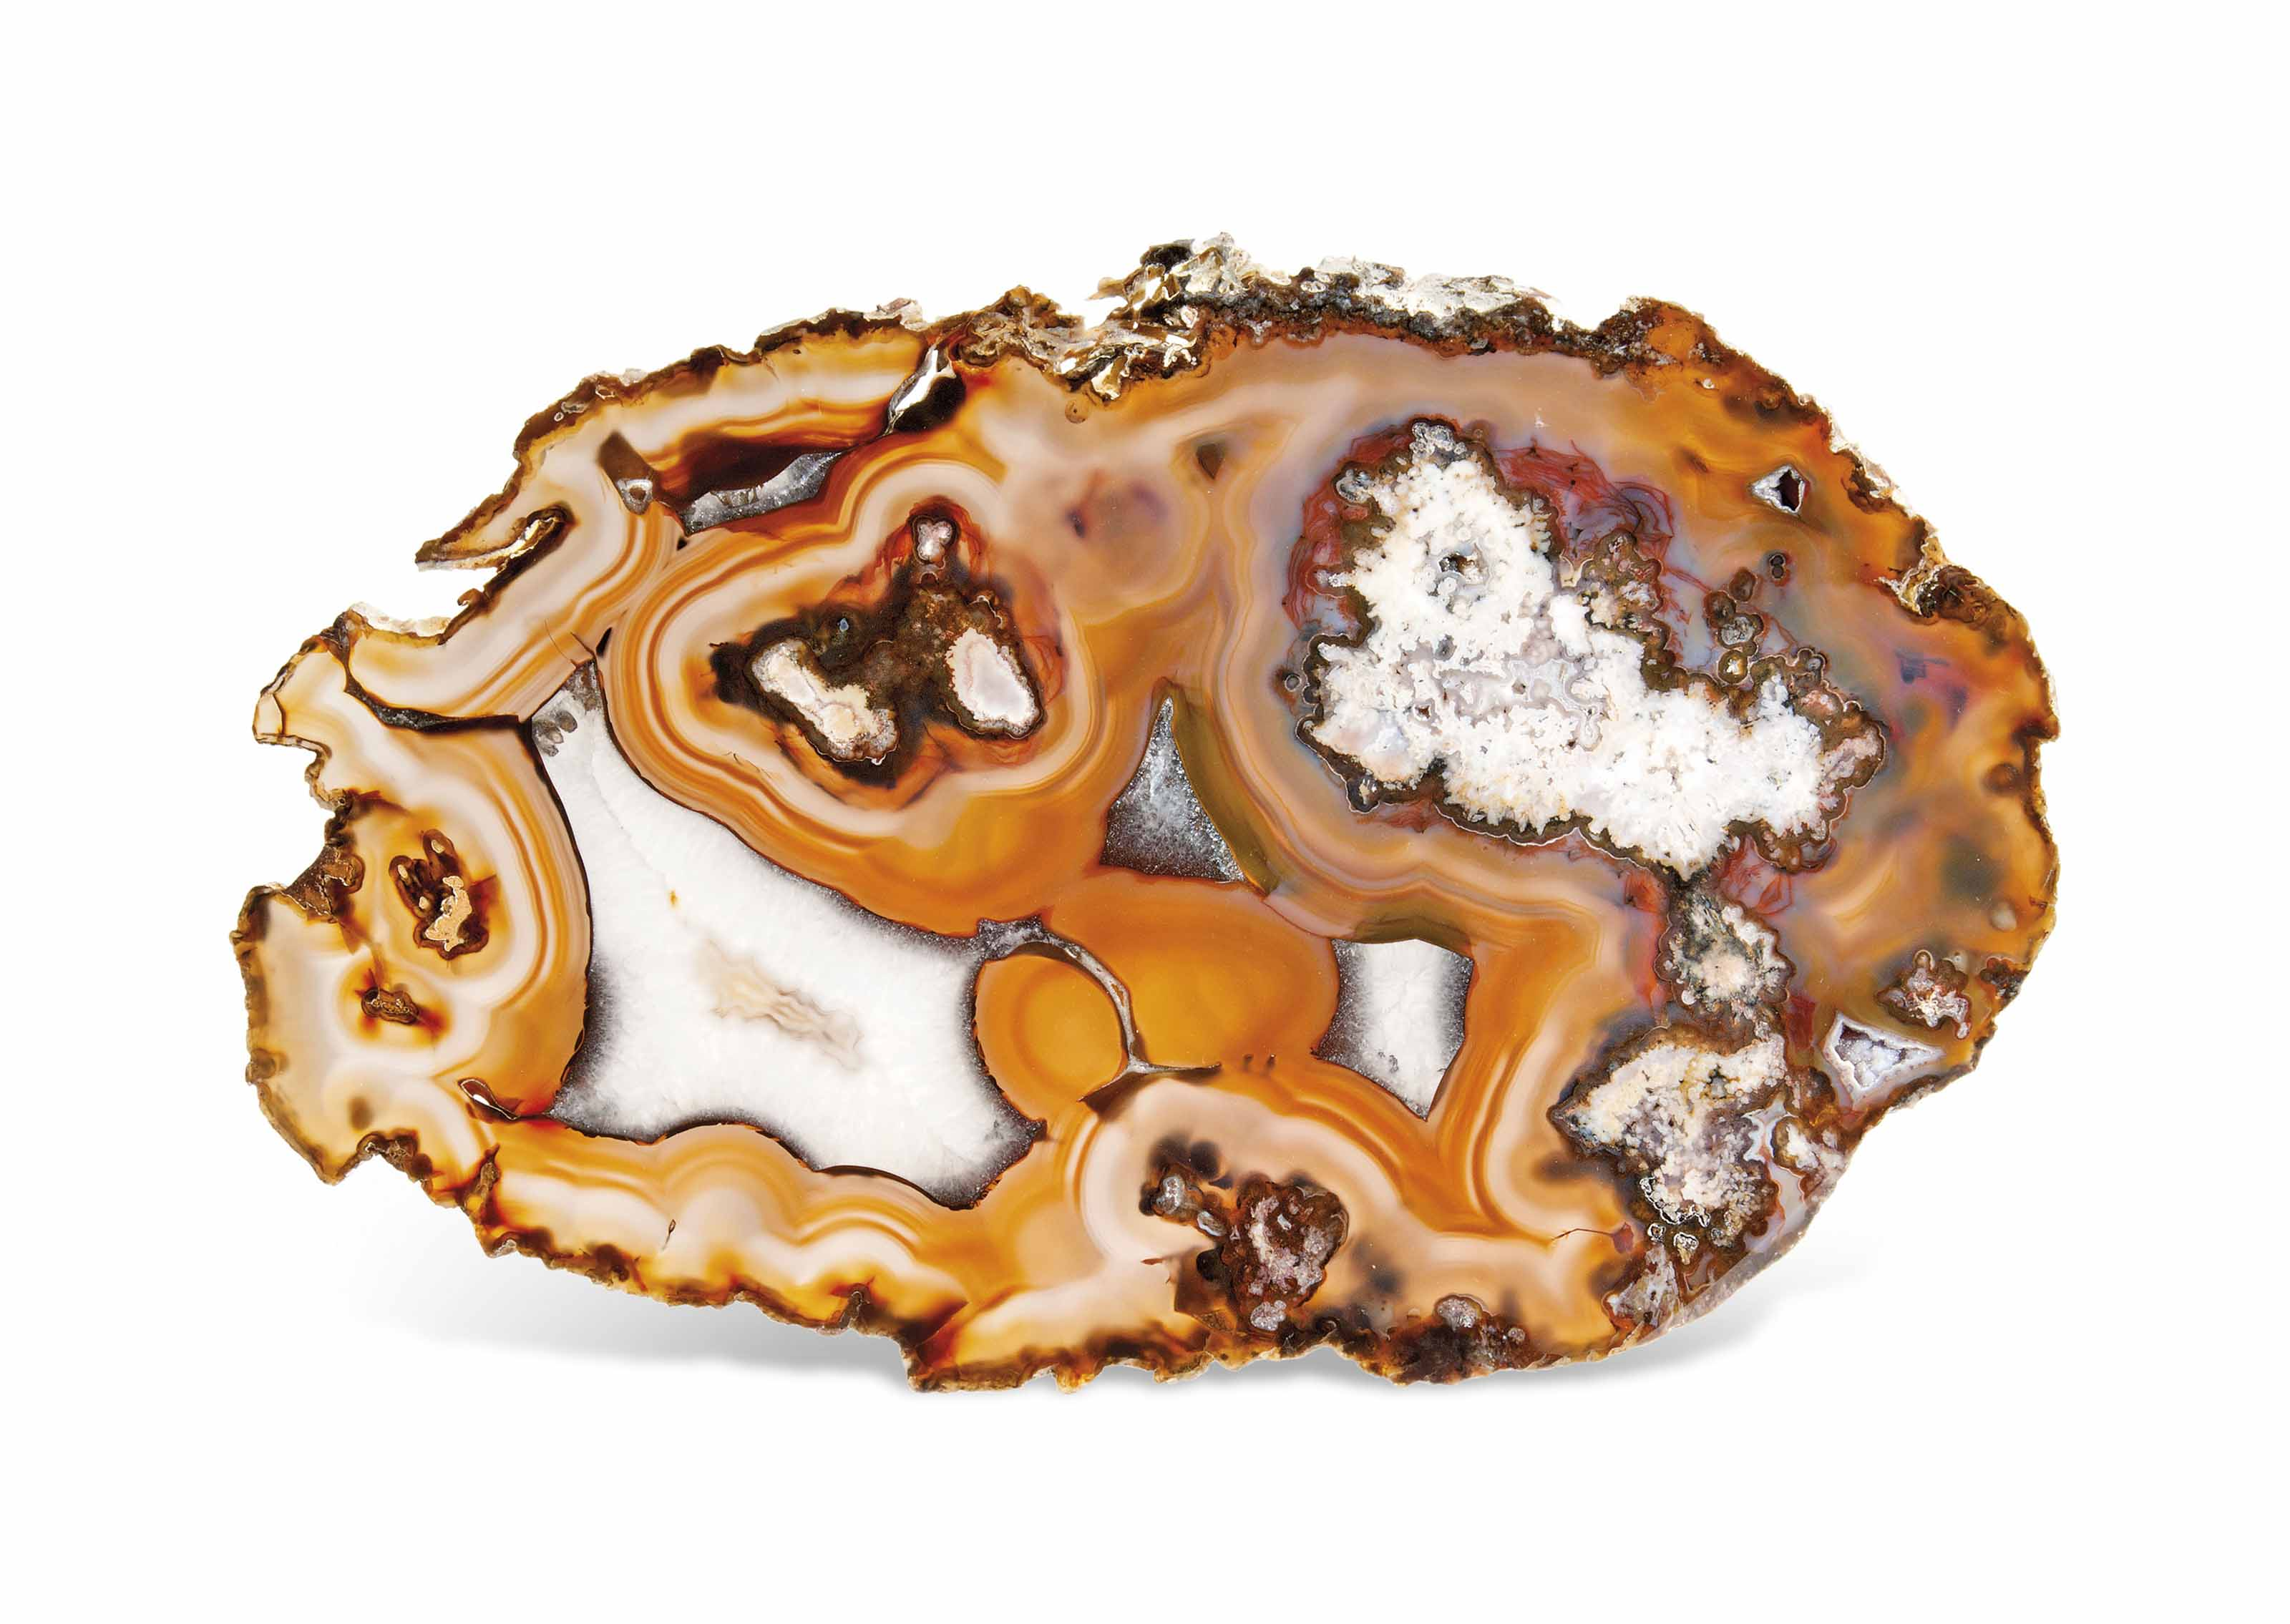 A LARGE AGATE SLICE